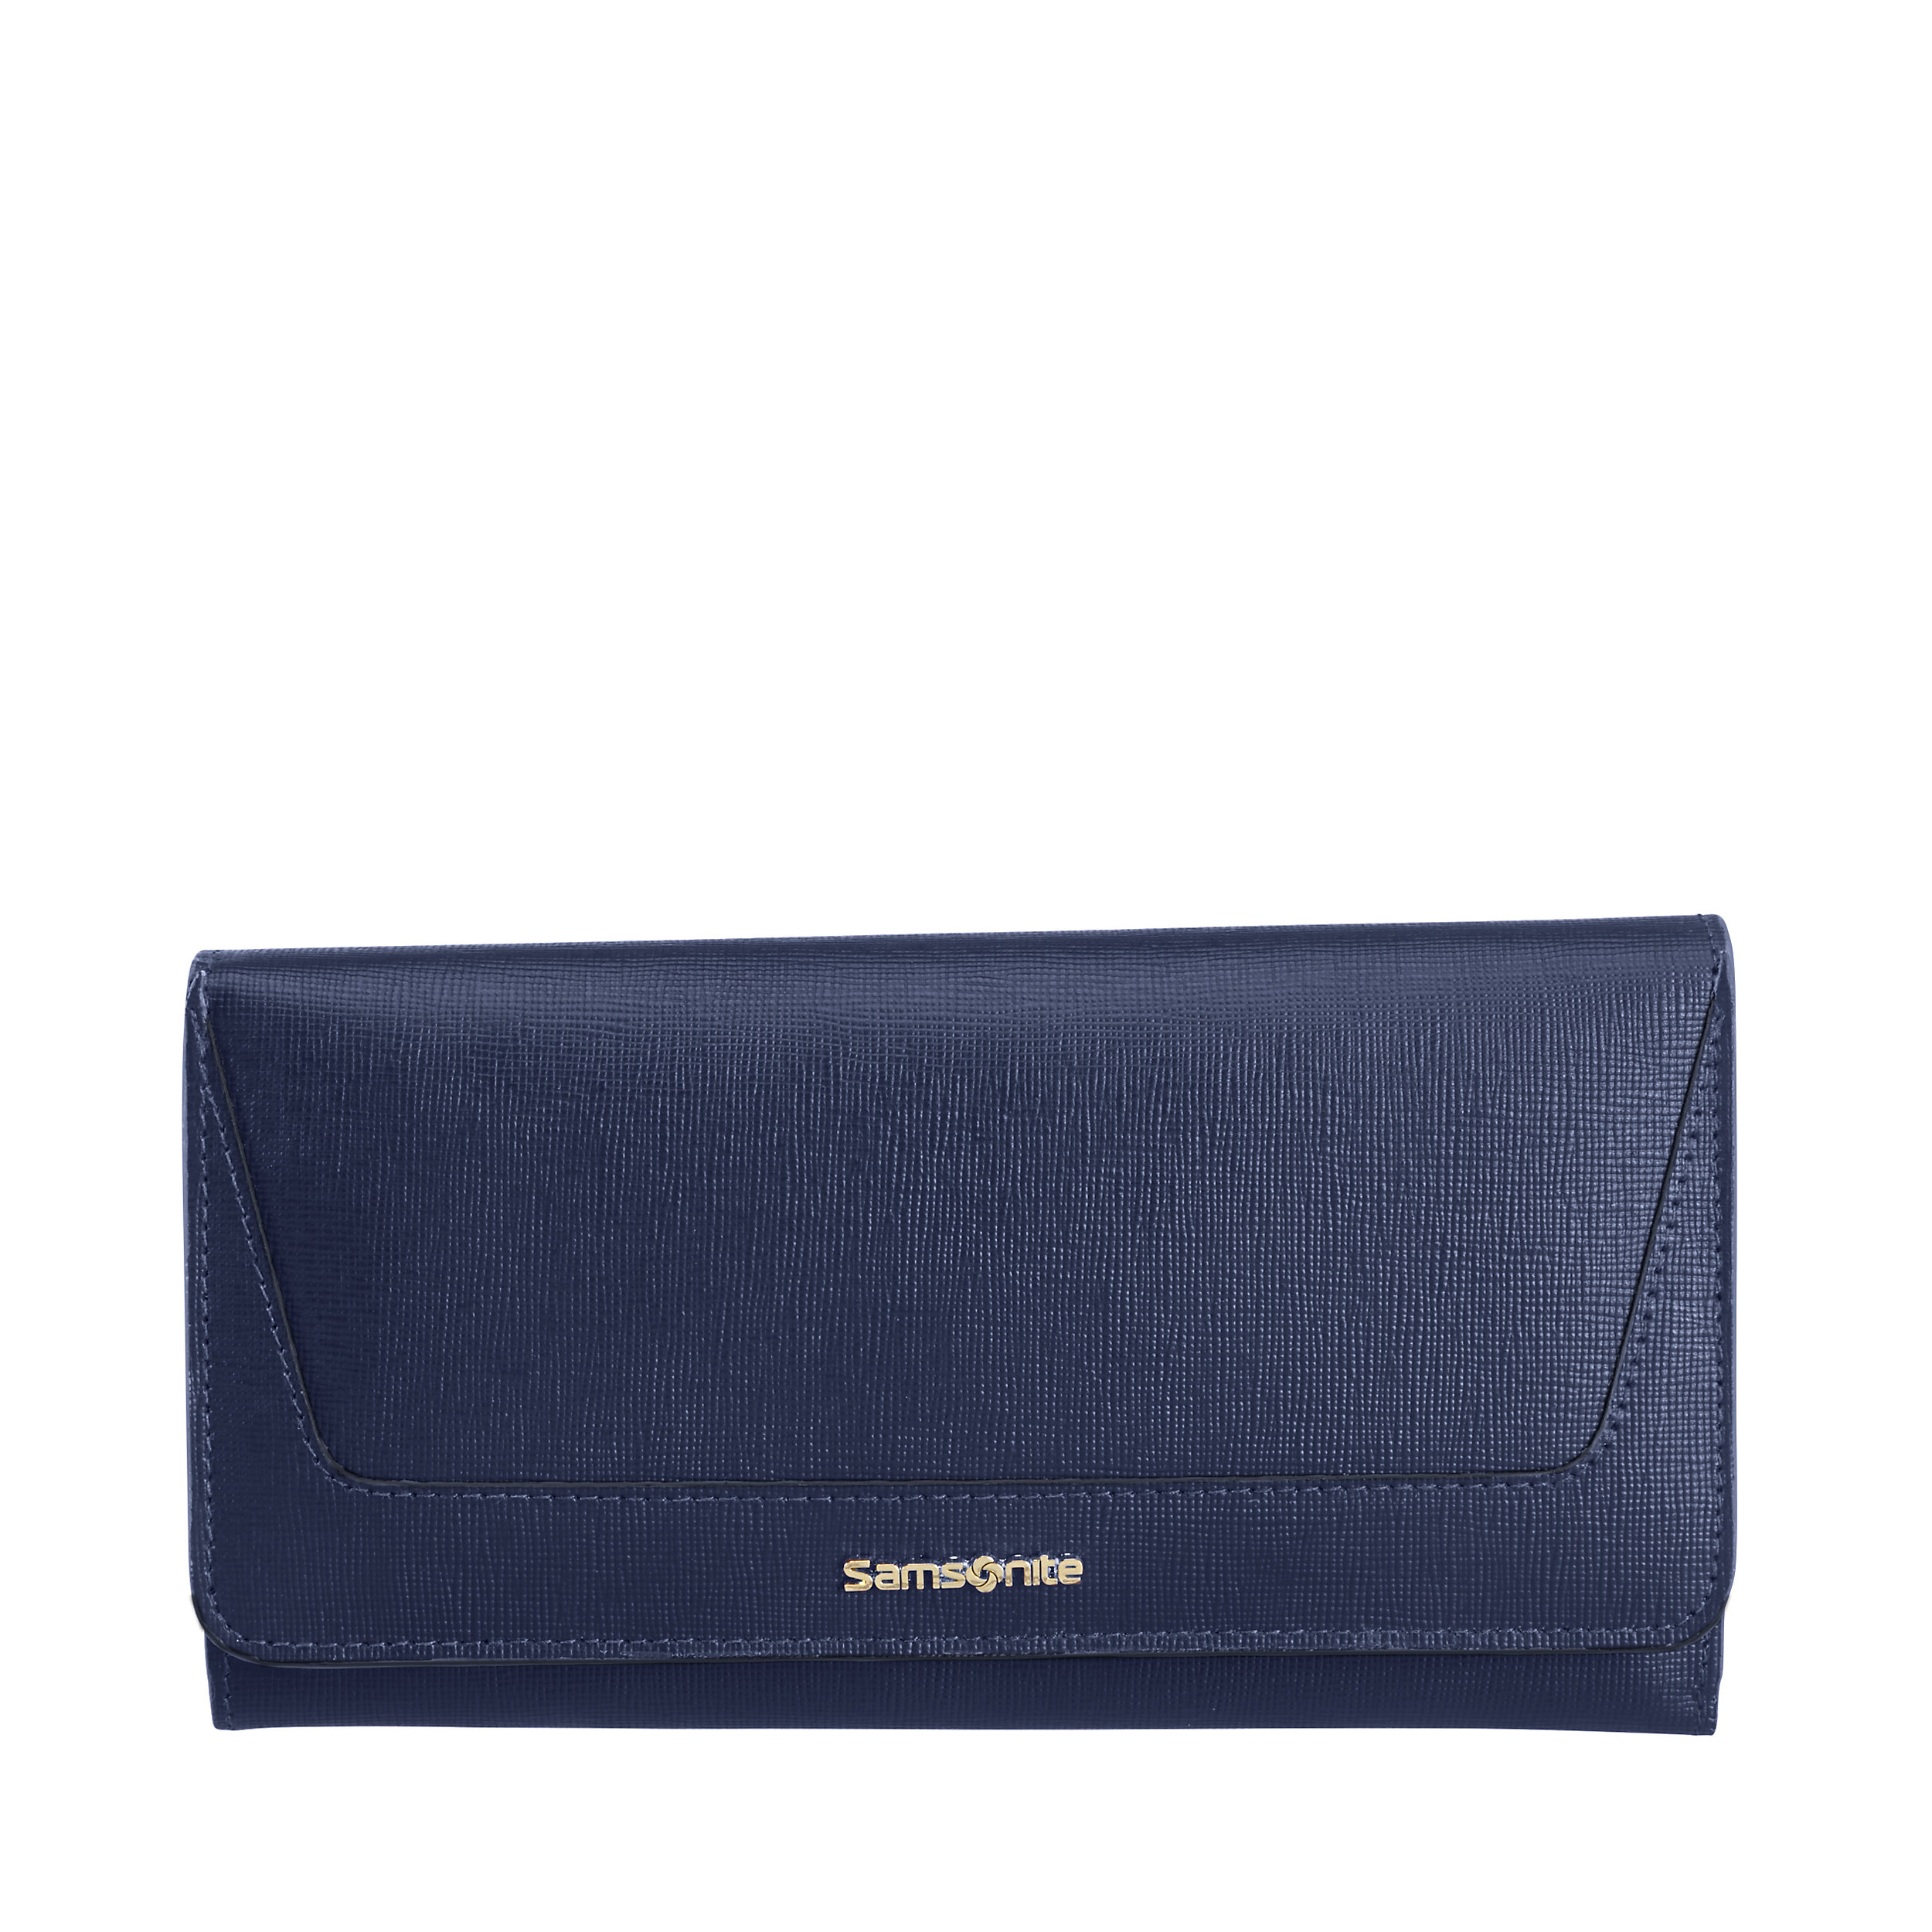 Women's Wallet with zip 10cc Lady Saffiano II SLG